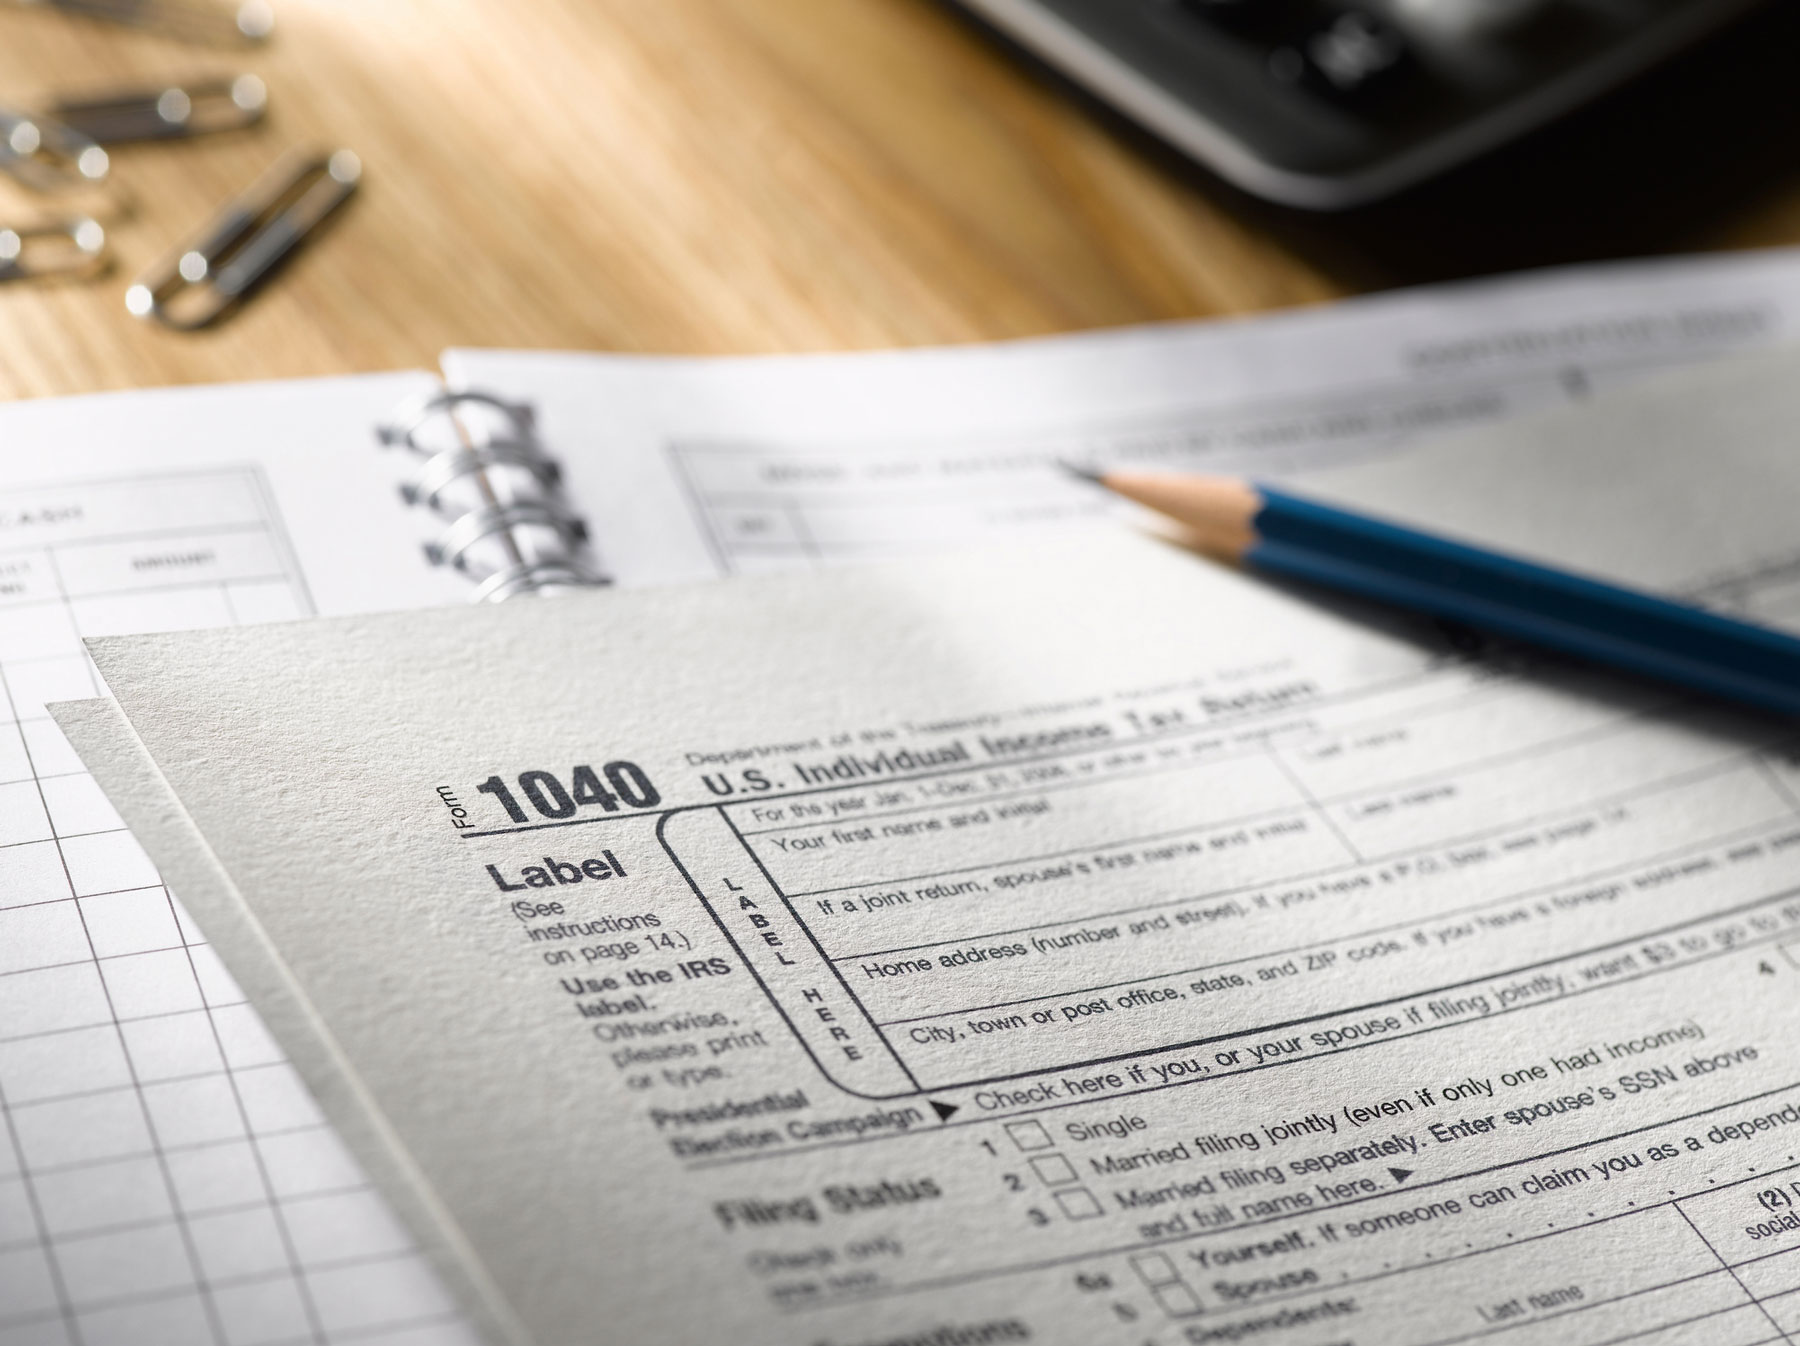 Tax season things to know - 1040 tax return form